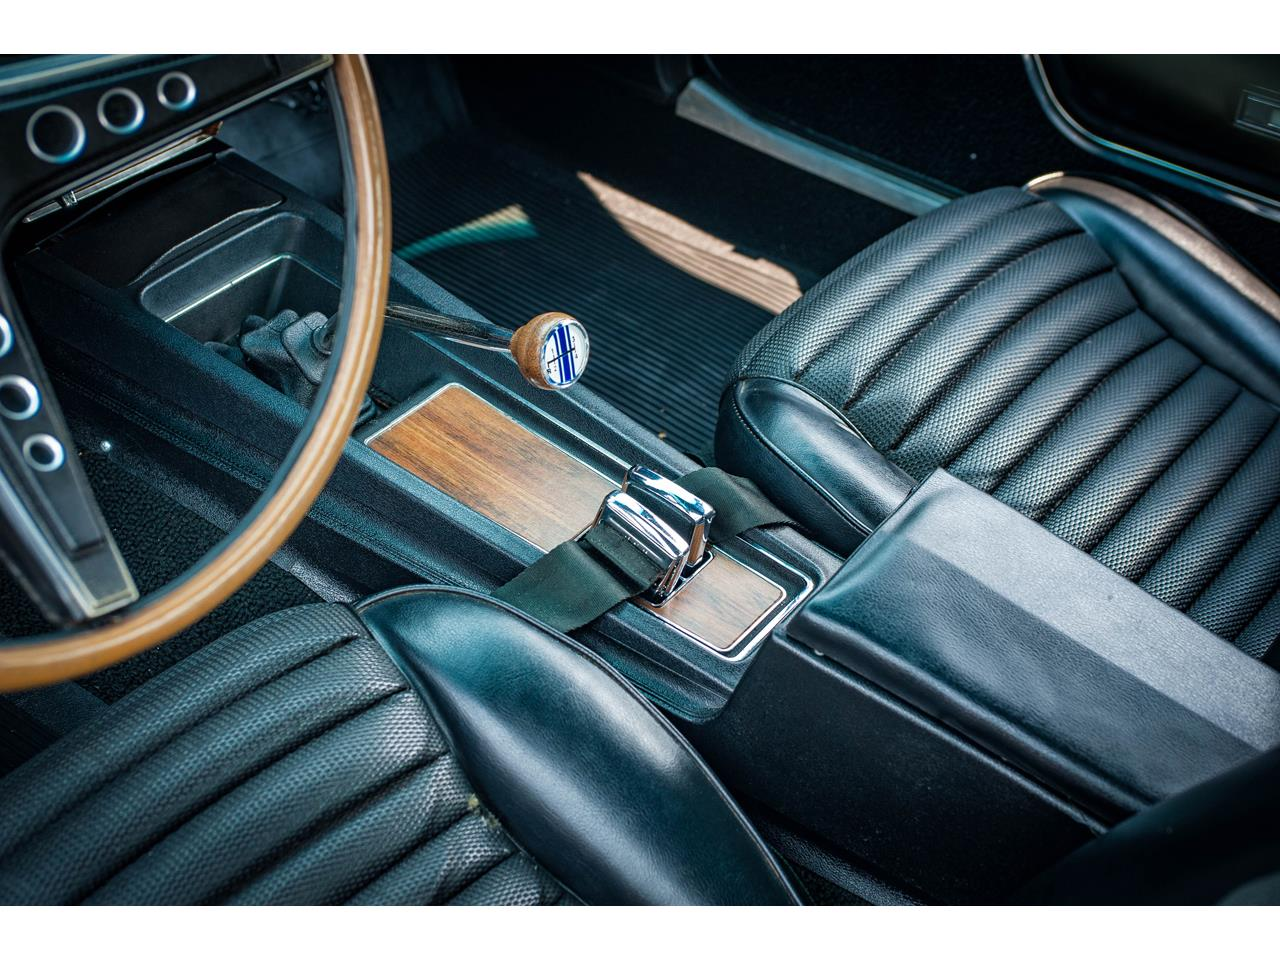 Large Picture of 1969 Ford Mustang located in Illinois Offered by Gateway Classic Cars - St. Louis - QBA2